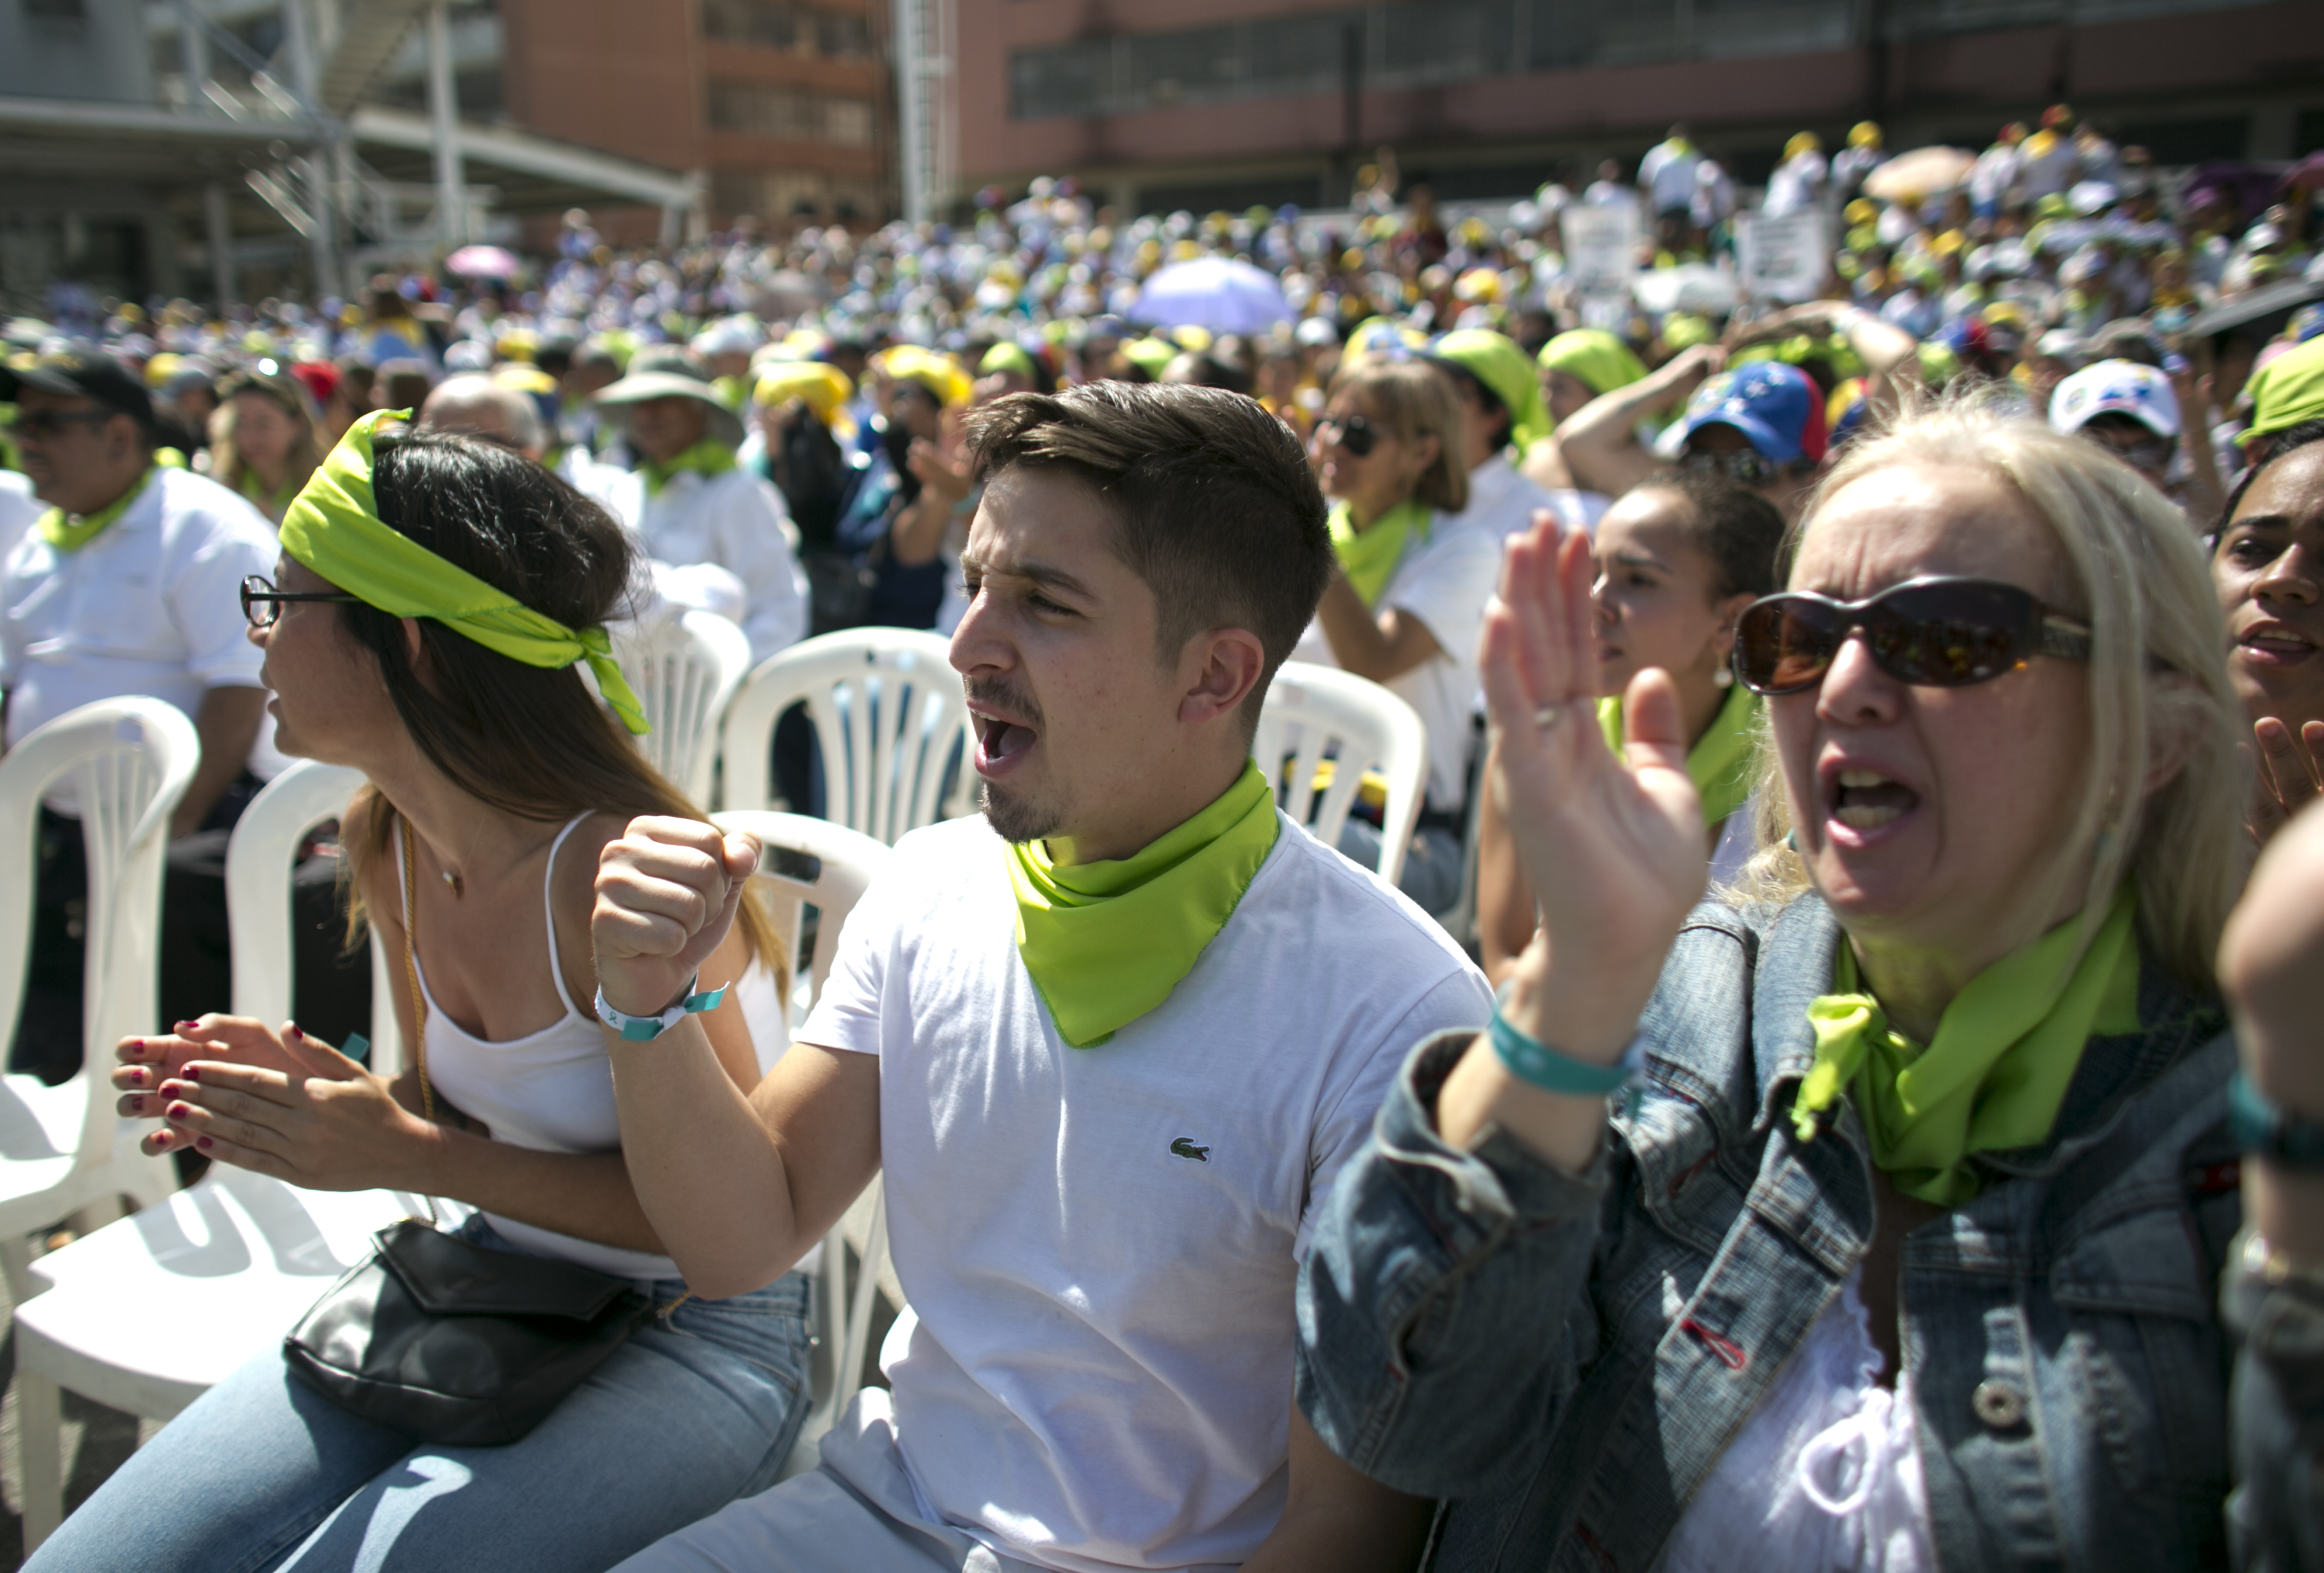 """People scream """"Humanitarian aid!"""" during an event to swear in nurses, doctors, professionals and others, as the group that will help with the arrival and distribution of humanitarian aid in Venezuela, in Caracas, Venezuela, Saturday, Feb. 16, 2019. The U.S. Air Force has begun flying tons of aid to a Colombian town on the Venezuelan border as part of an effort meant to undermine socialist President Nicolas Maduro. The first of three C-17 cargo planes has flown from Homestead Air Reserve Base in Florida and landed in the town of Cucuta.(AP Photo/Ariana Cubillos)"""